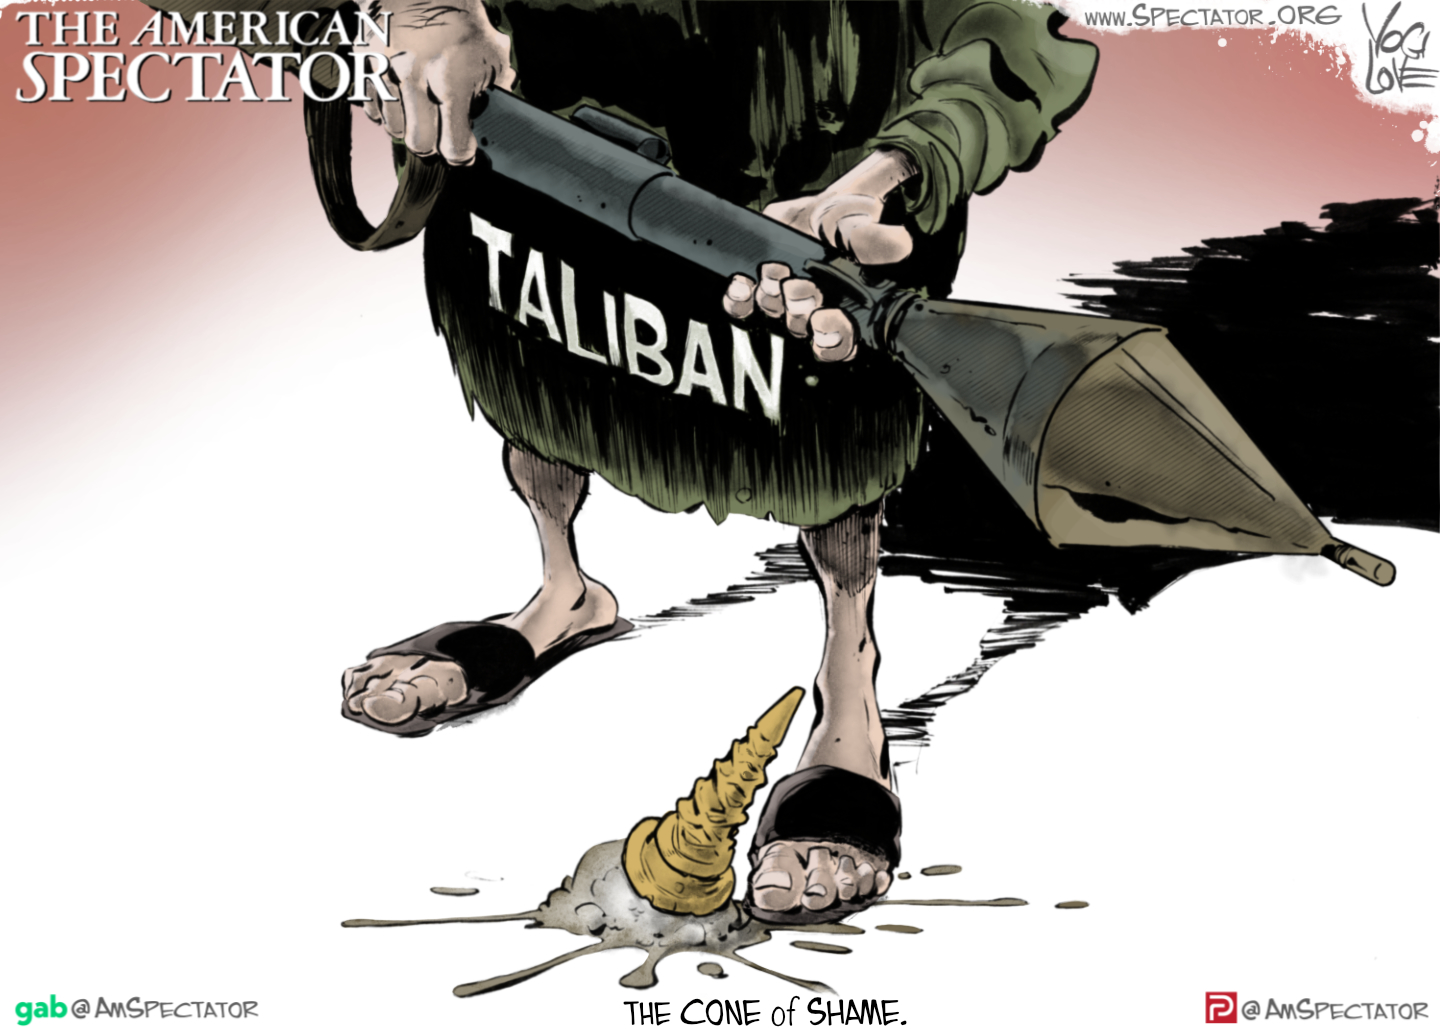 """""""The Taliban Cone of Shame,"""" editorial cartoon by Yogi LoveforThe American Spectator, August 16, 2021."""